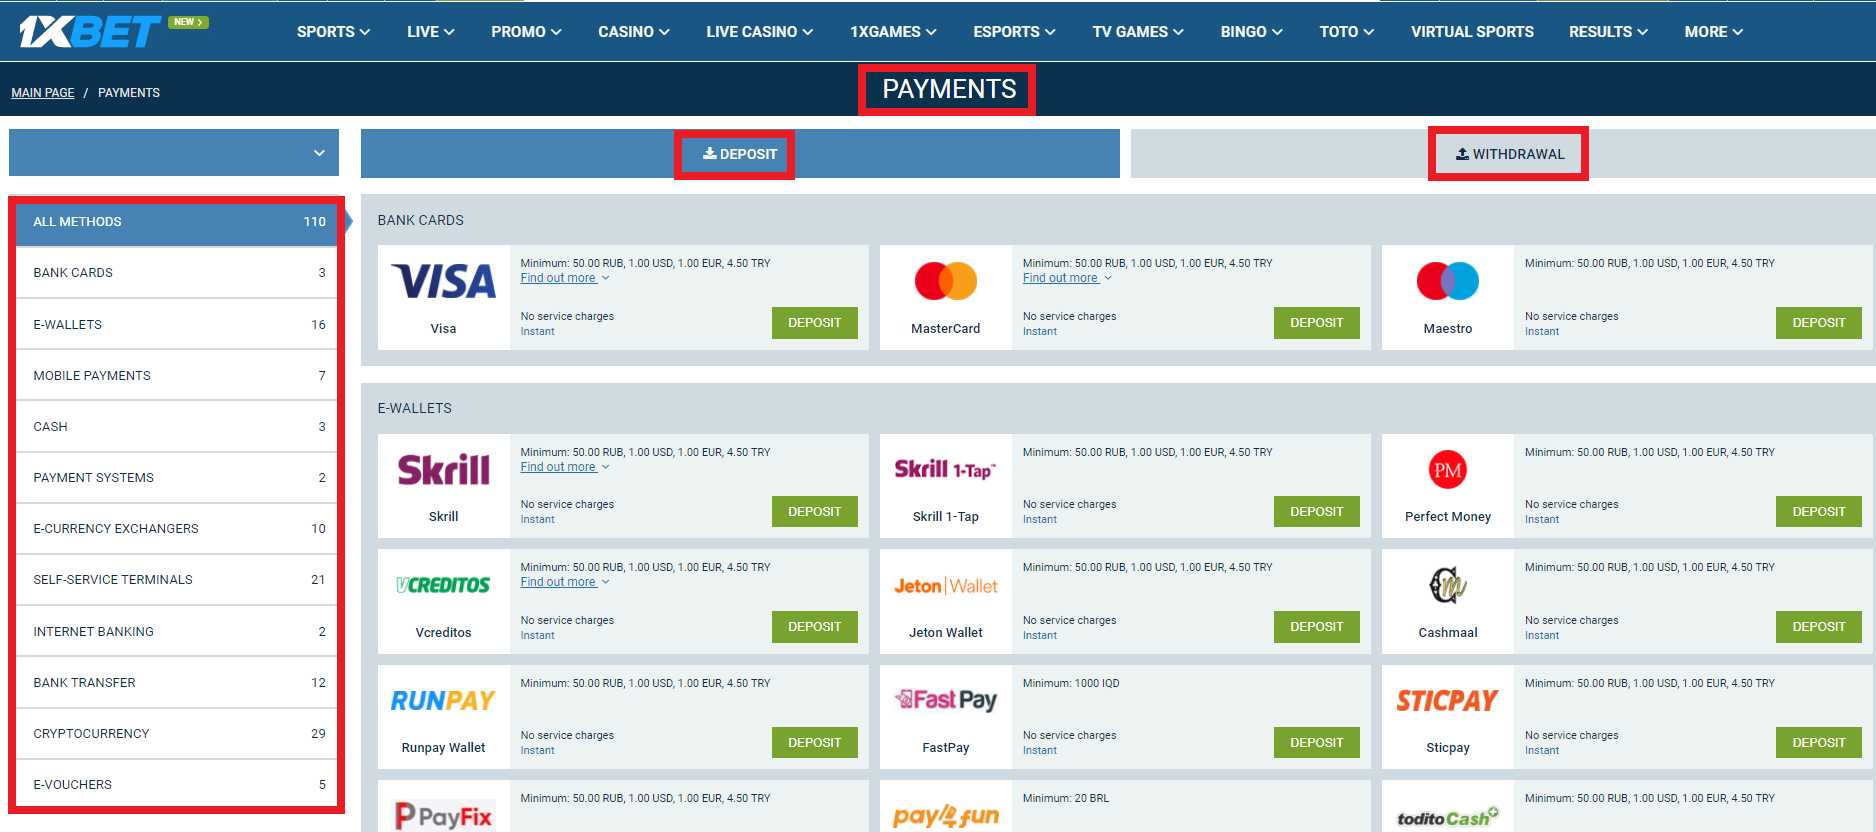 What payment methods available at 1xBet allow getting bonuses?